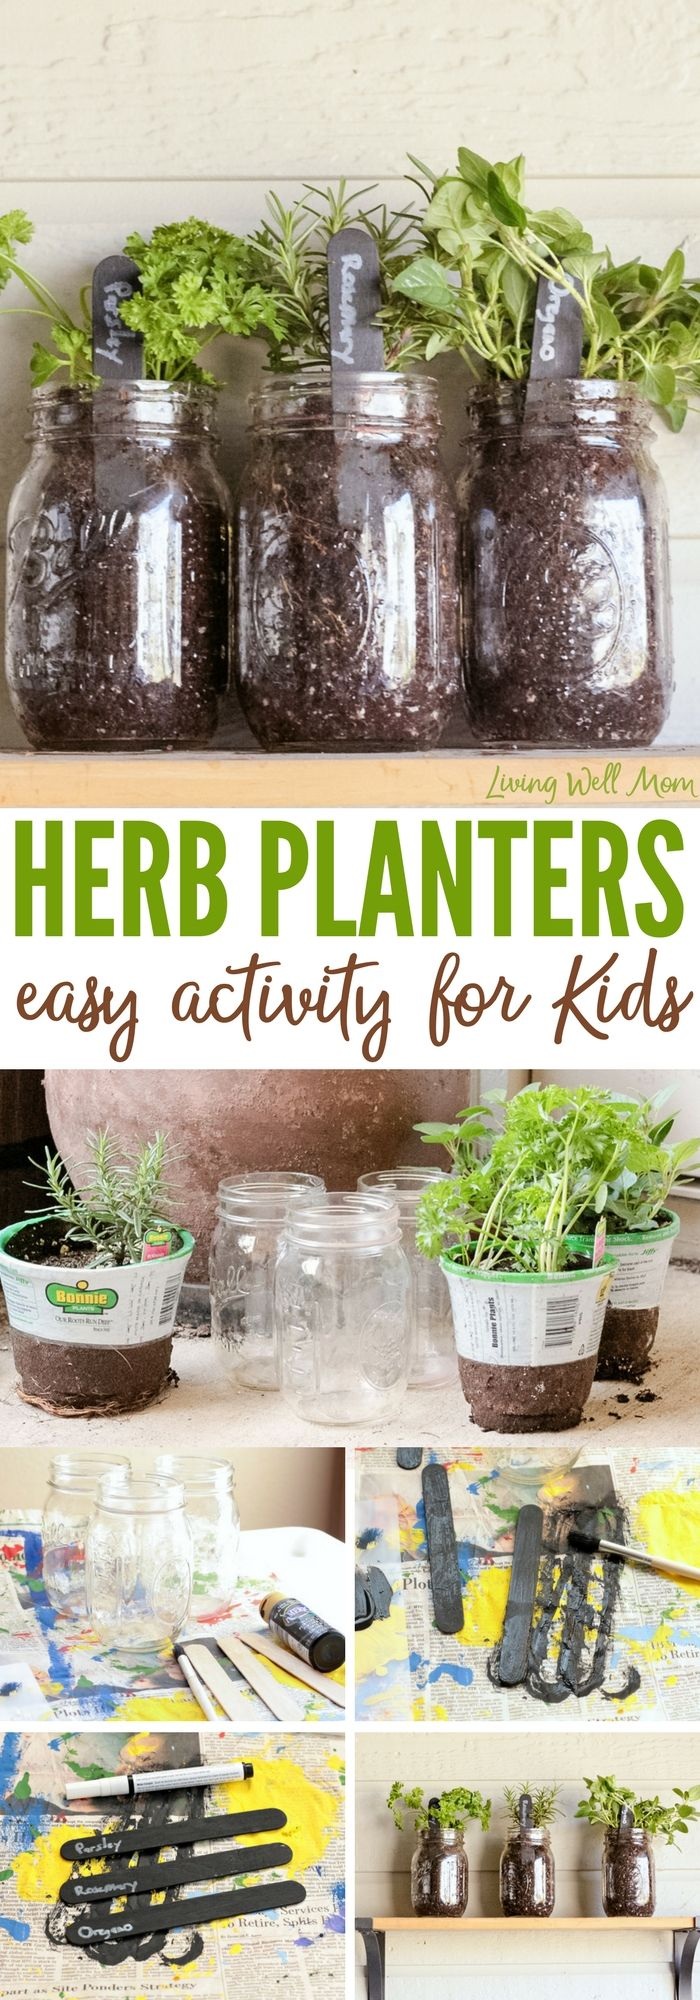 How To Make Easy Herb Planters For Kids   Welcome Spring And Teach Kids How  To Do Simple Gardening With These Easy Mason Jar Herb Planters!